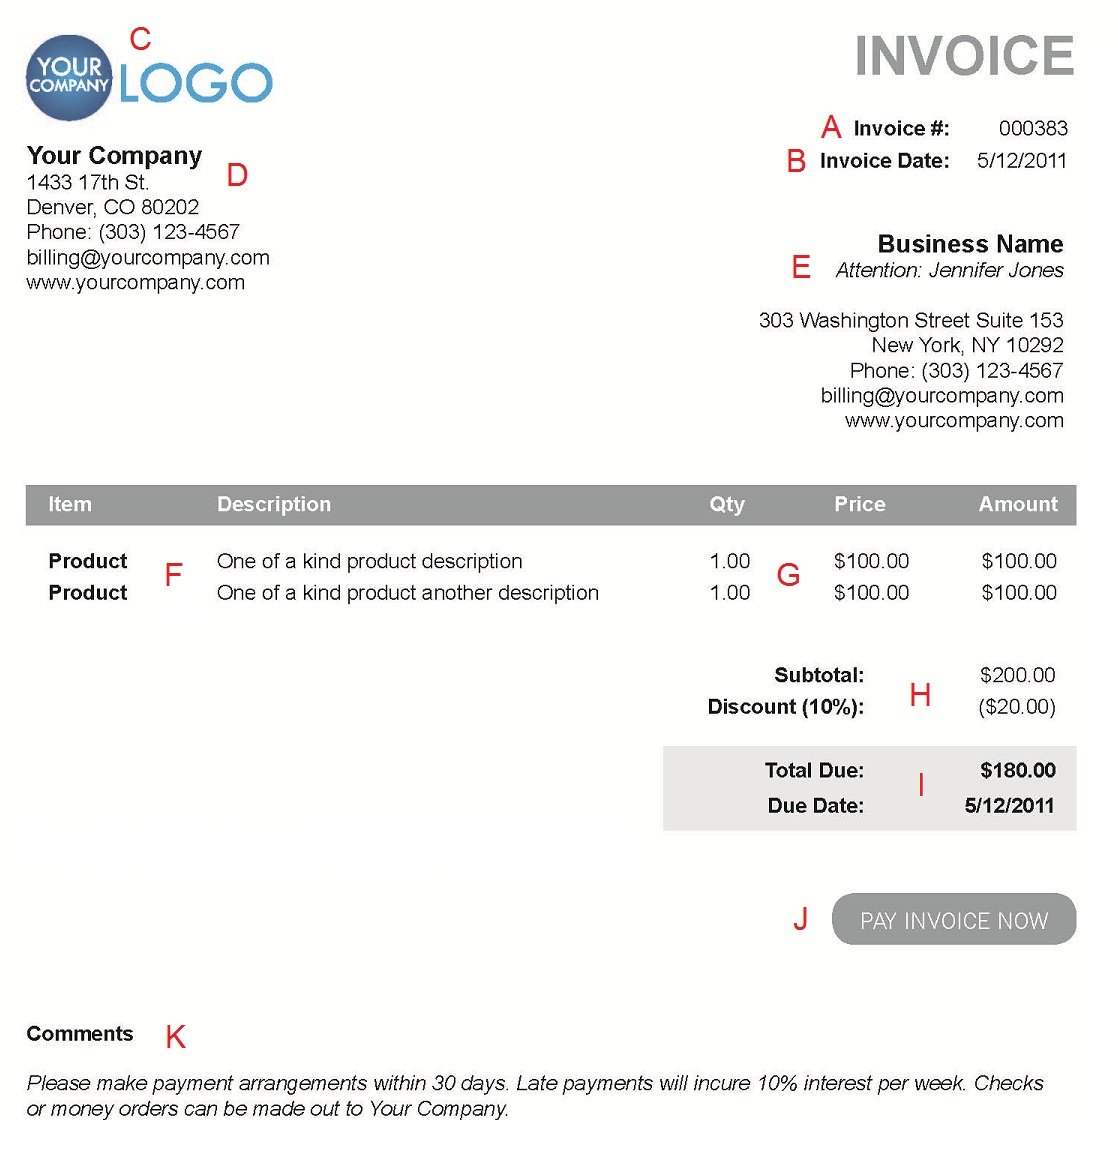 Occupyhistoryus  Fascinating The  Different Sections Of An Electronic Payment Invoice With Exciting A  With Endearing Sales Invoice Example Also Contract Invoice In Addition Purchase Orders And Invoices And Invoice Remittance As Well As Commercial Invoice For International Shipping Additionally Sample Consultant Invoice From Paysimplecom With Occupyhistoryus  Exciting The  Different Sections Of An Electronic Payment Invoice With Endearing A  And Fascinating Sales Invoice Example Also Contract Invoice In Addition Purchase Orders And Invoices From Paysimplecom